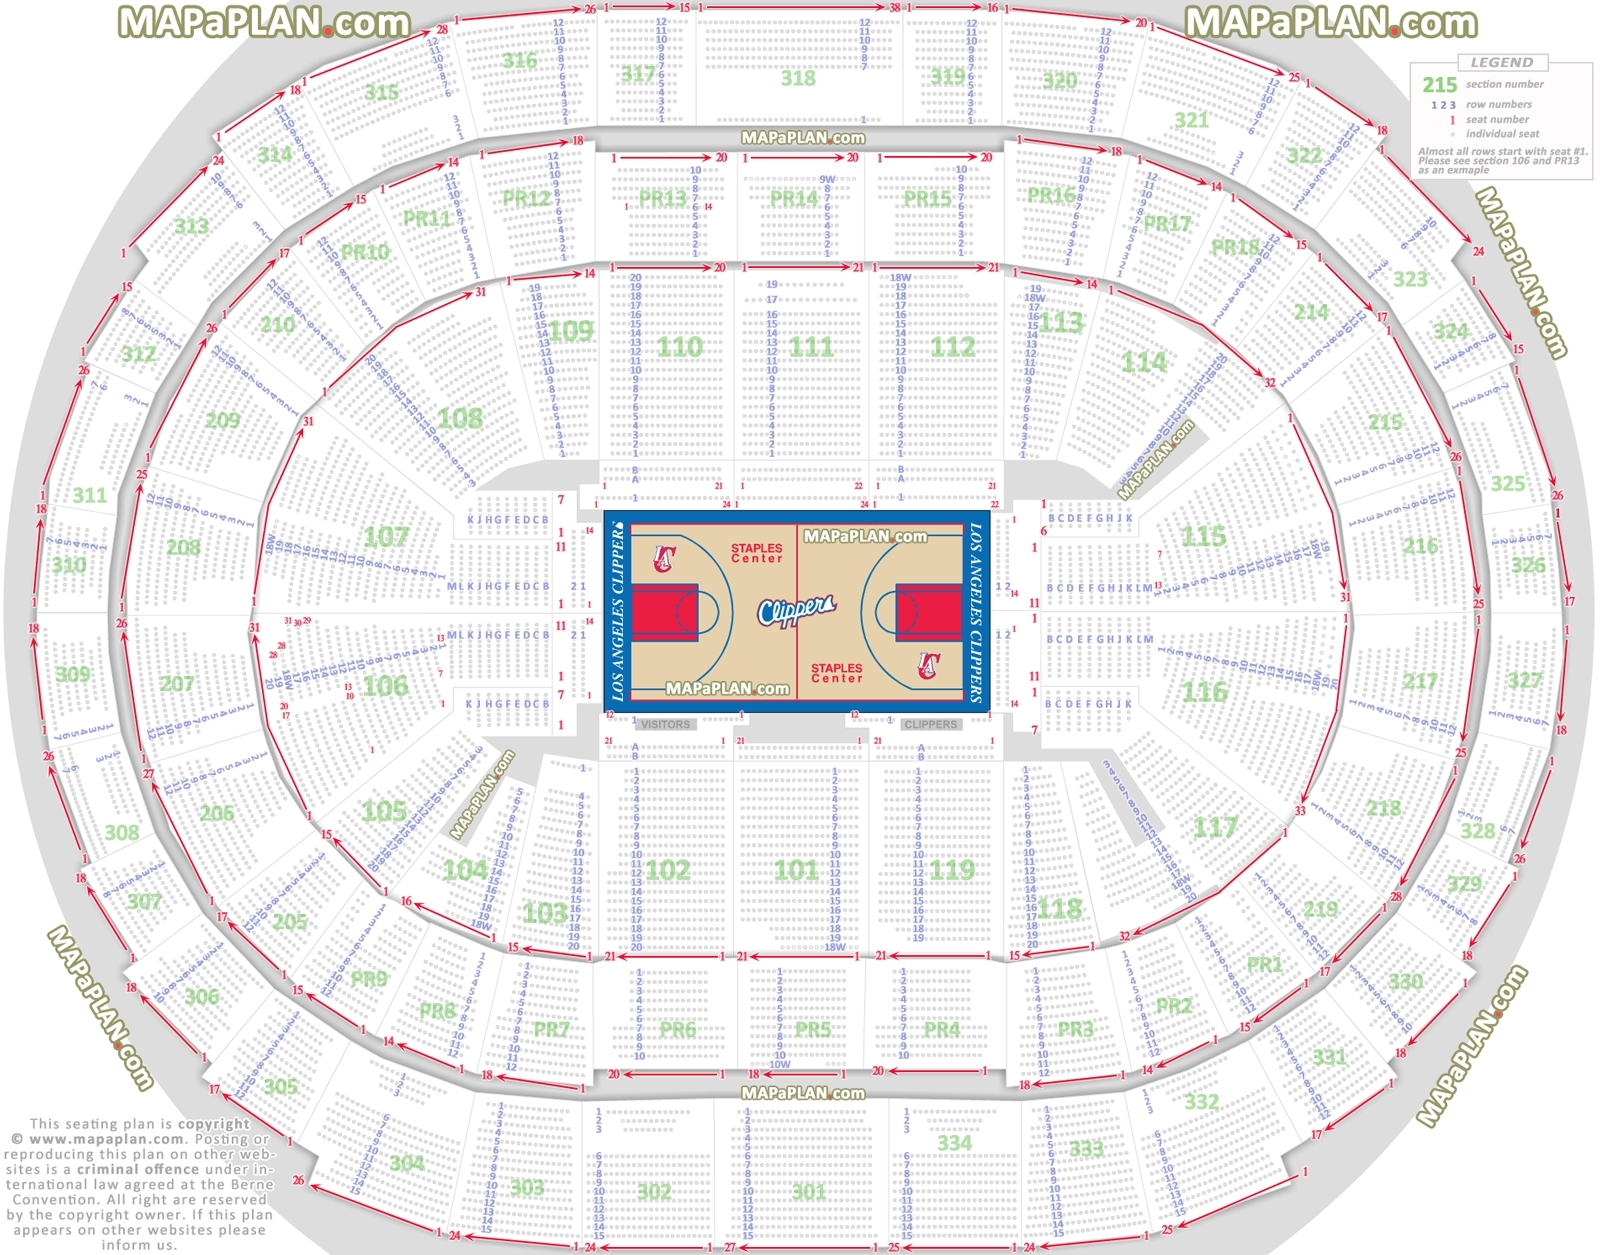 Staples Center Seat Numbers Detailed Seating Chart - La California pertaining to Verizon Center Seating Chart Pdf